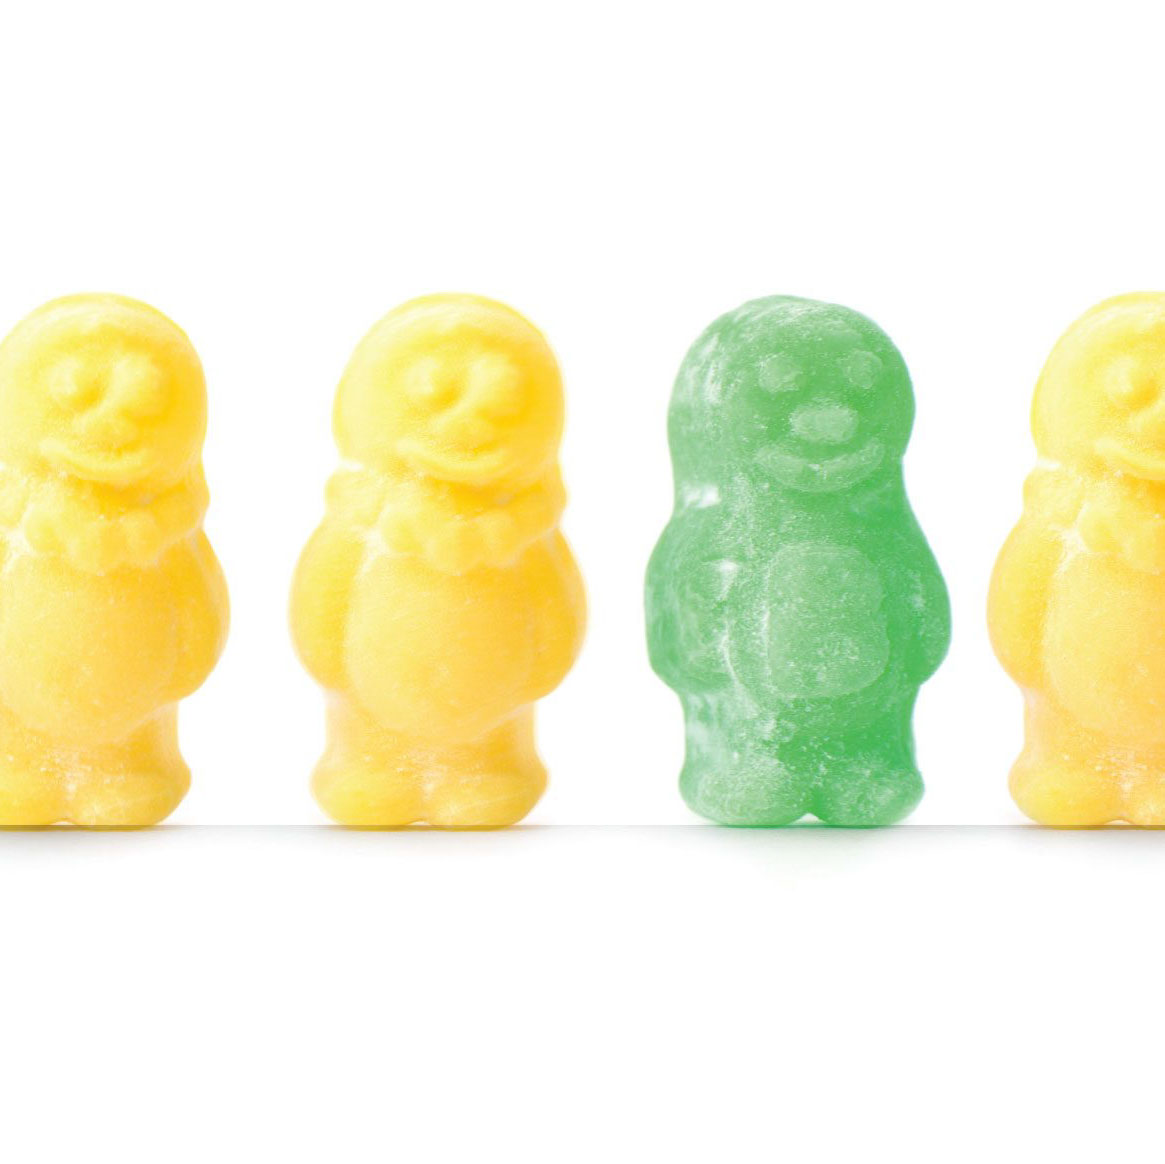 Image of a row of jelly babies, showing the new brand colours for St John Ambulance